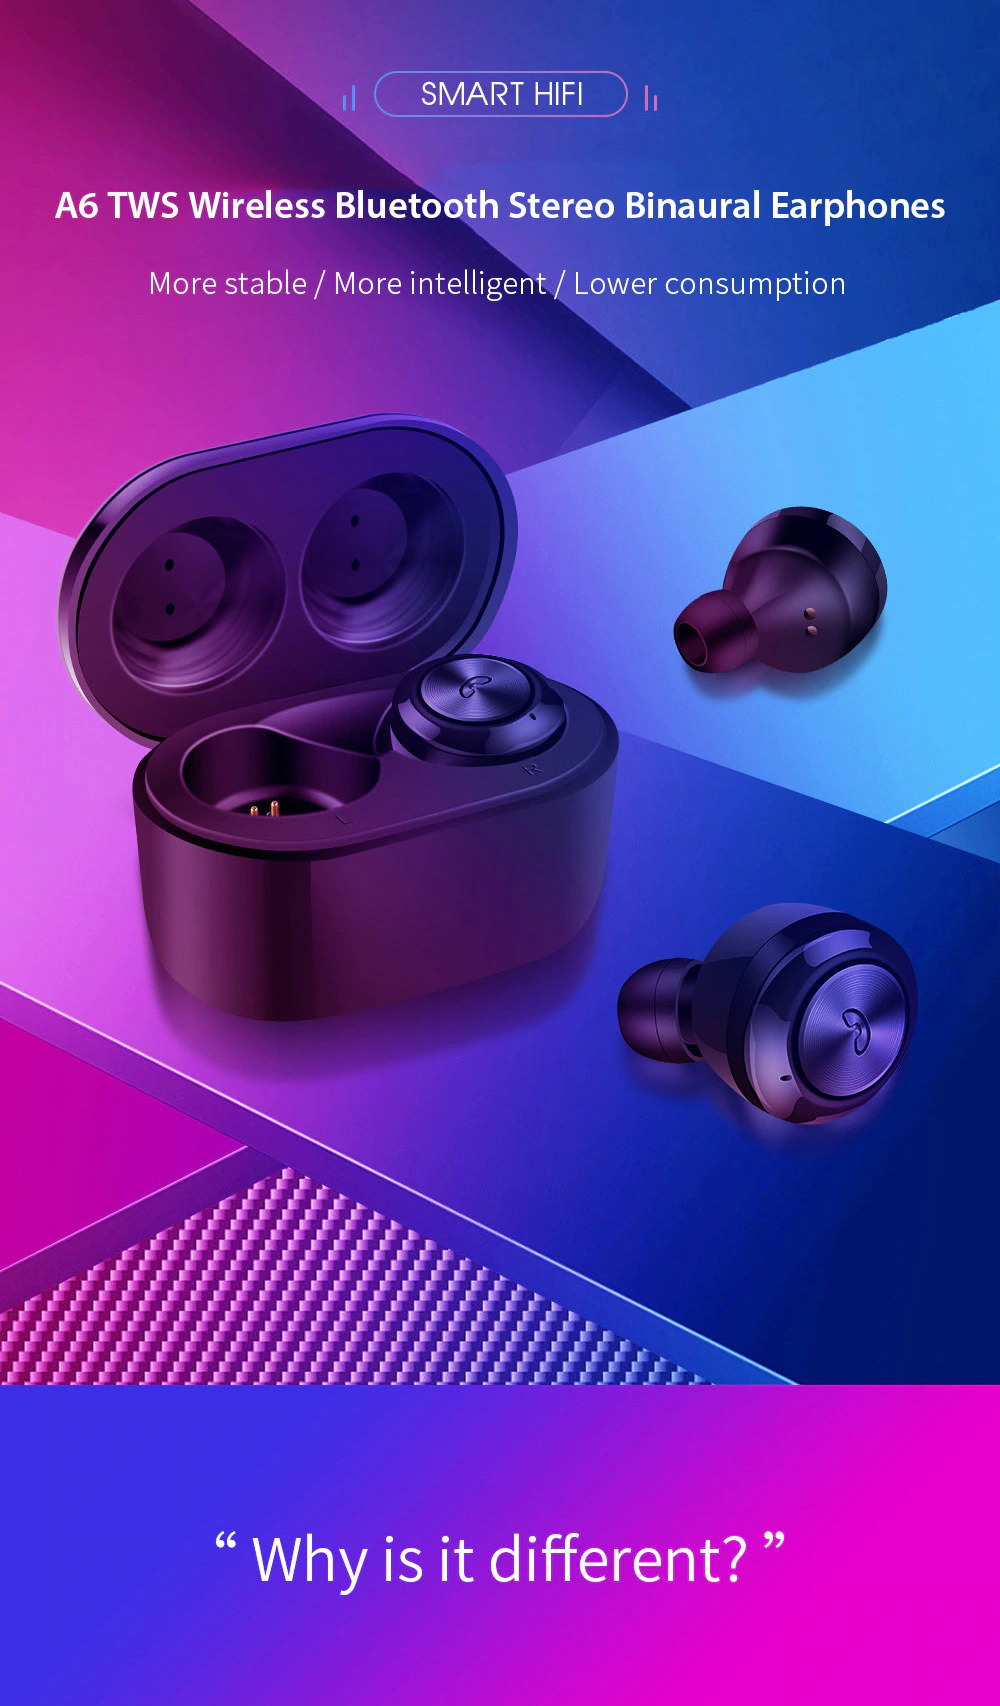 a6 tws bluetooth binaural earphones